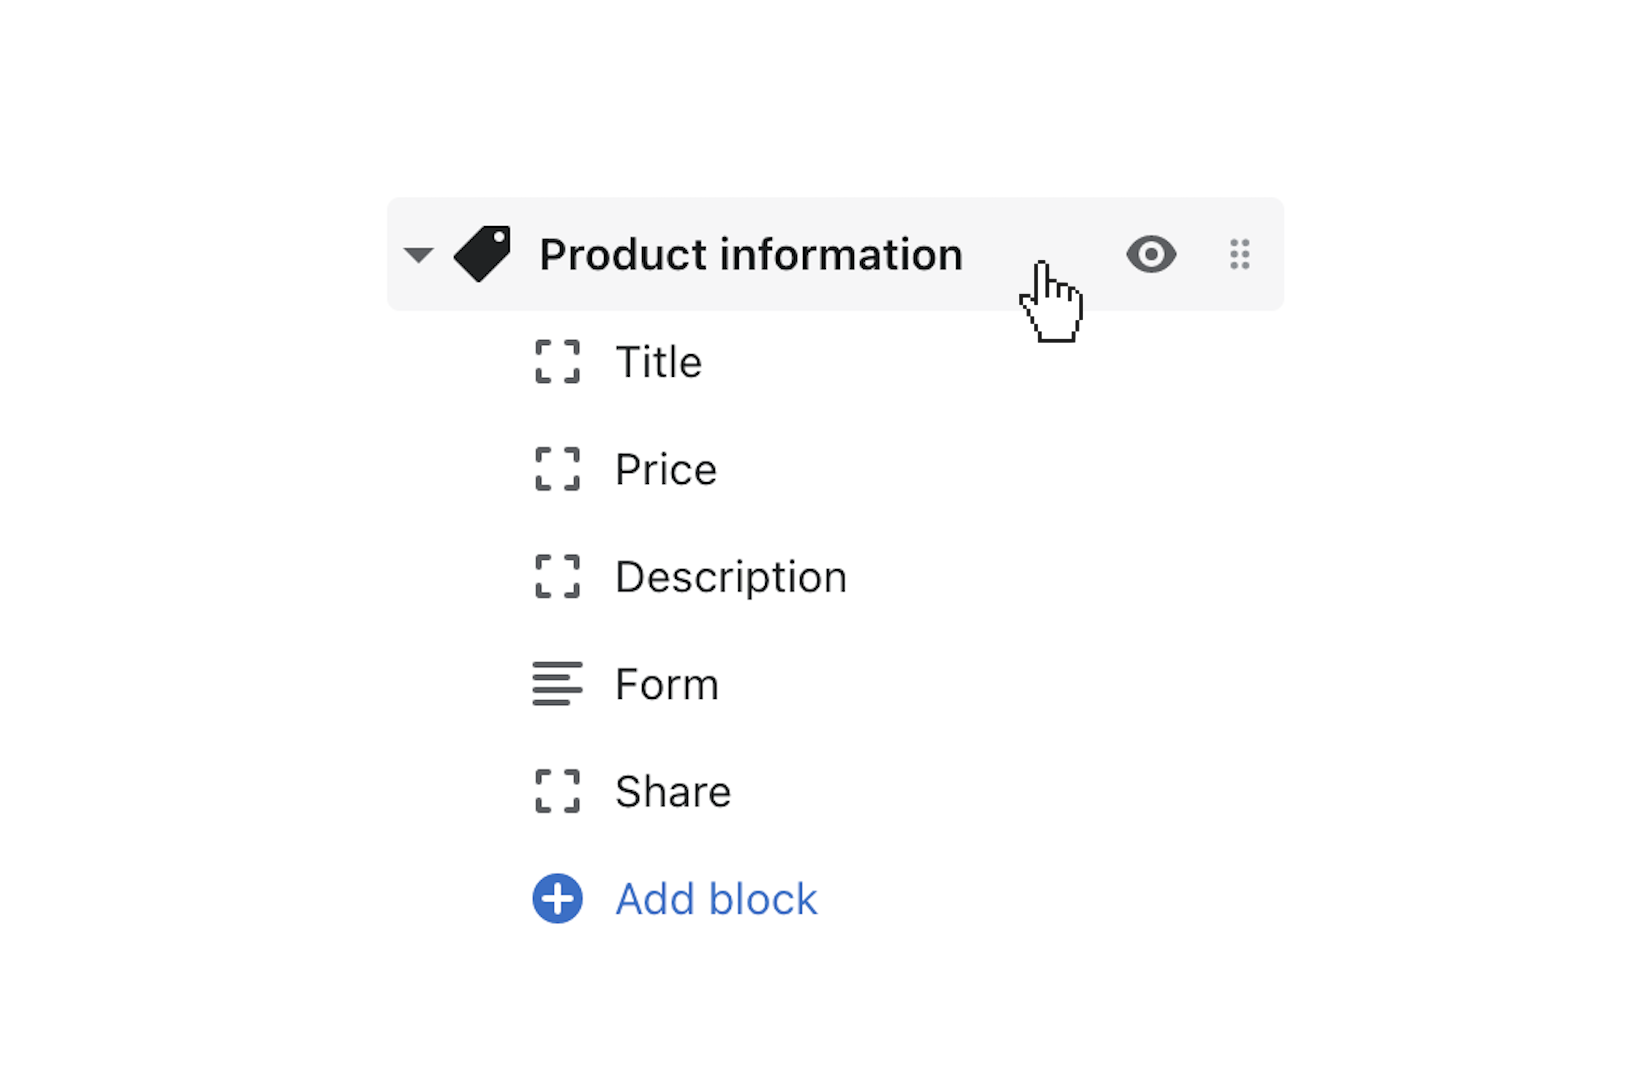 click_product_information_to_open_mainproduct_page_settings.png